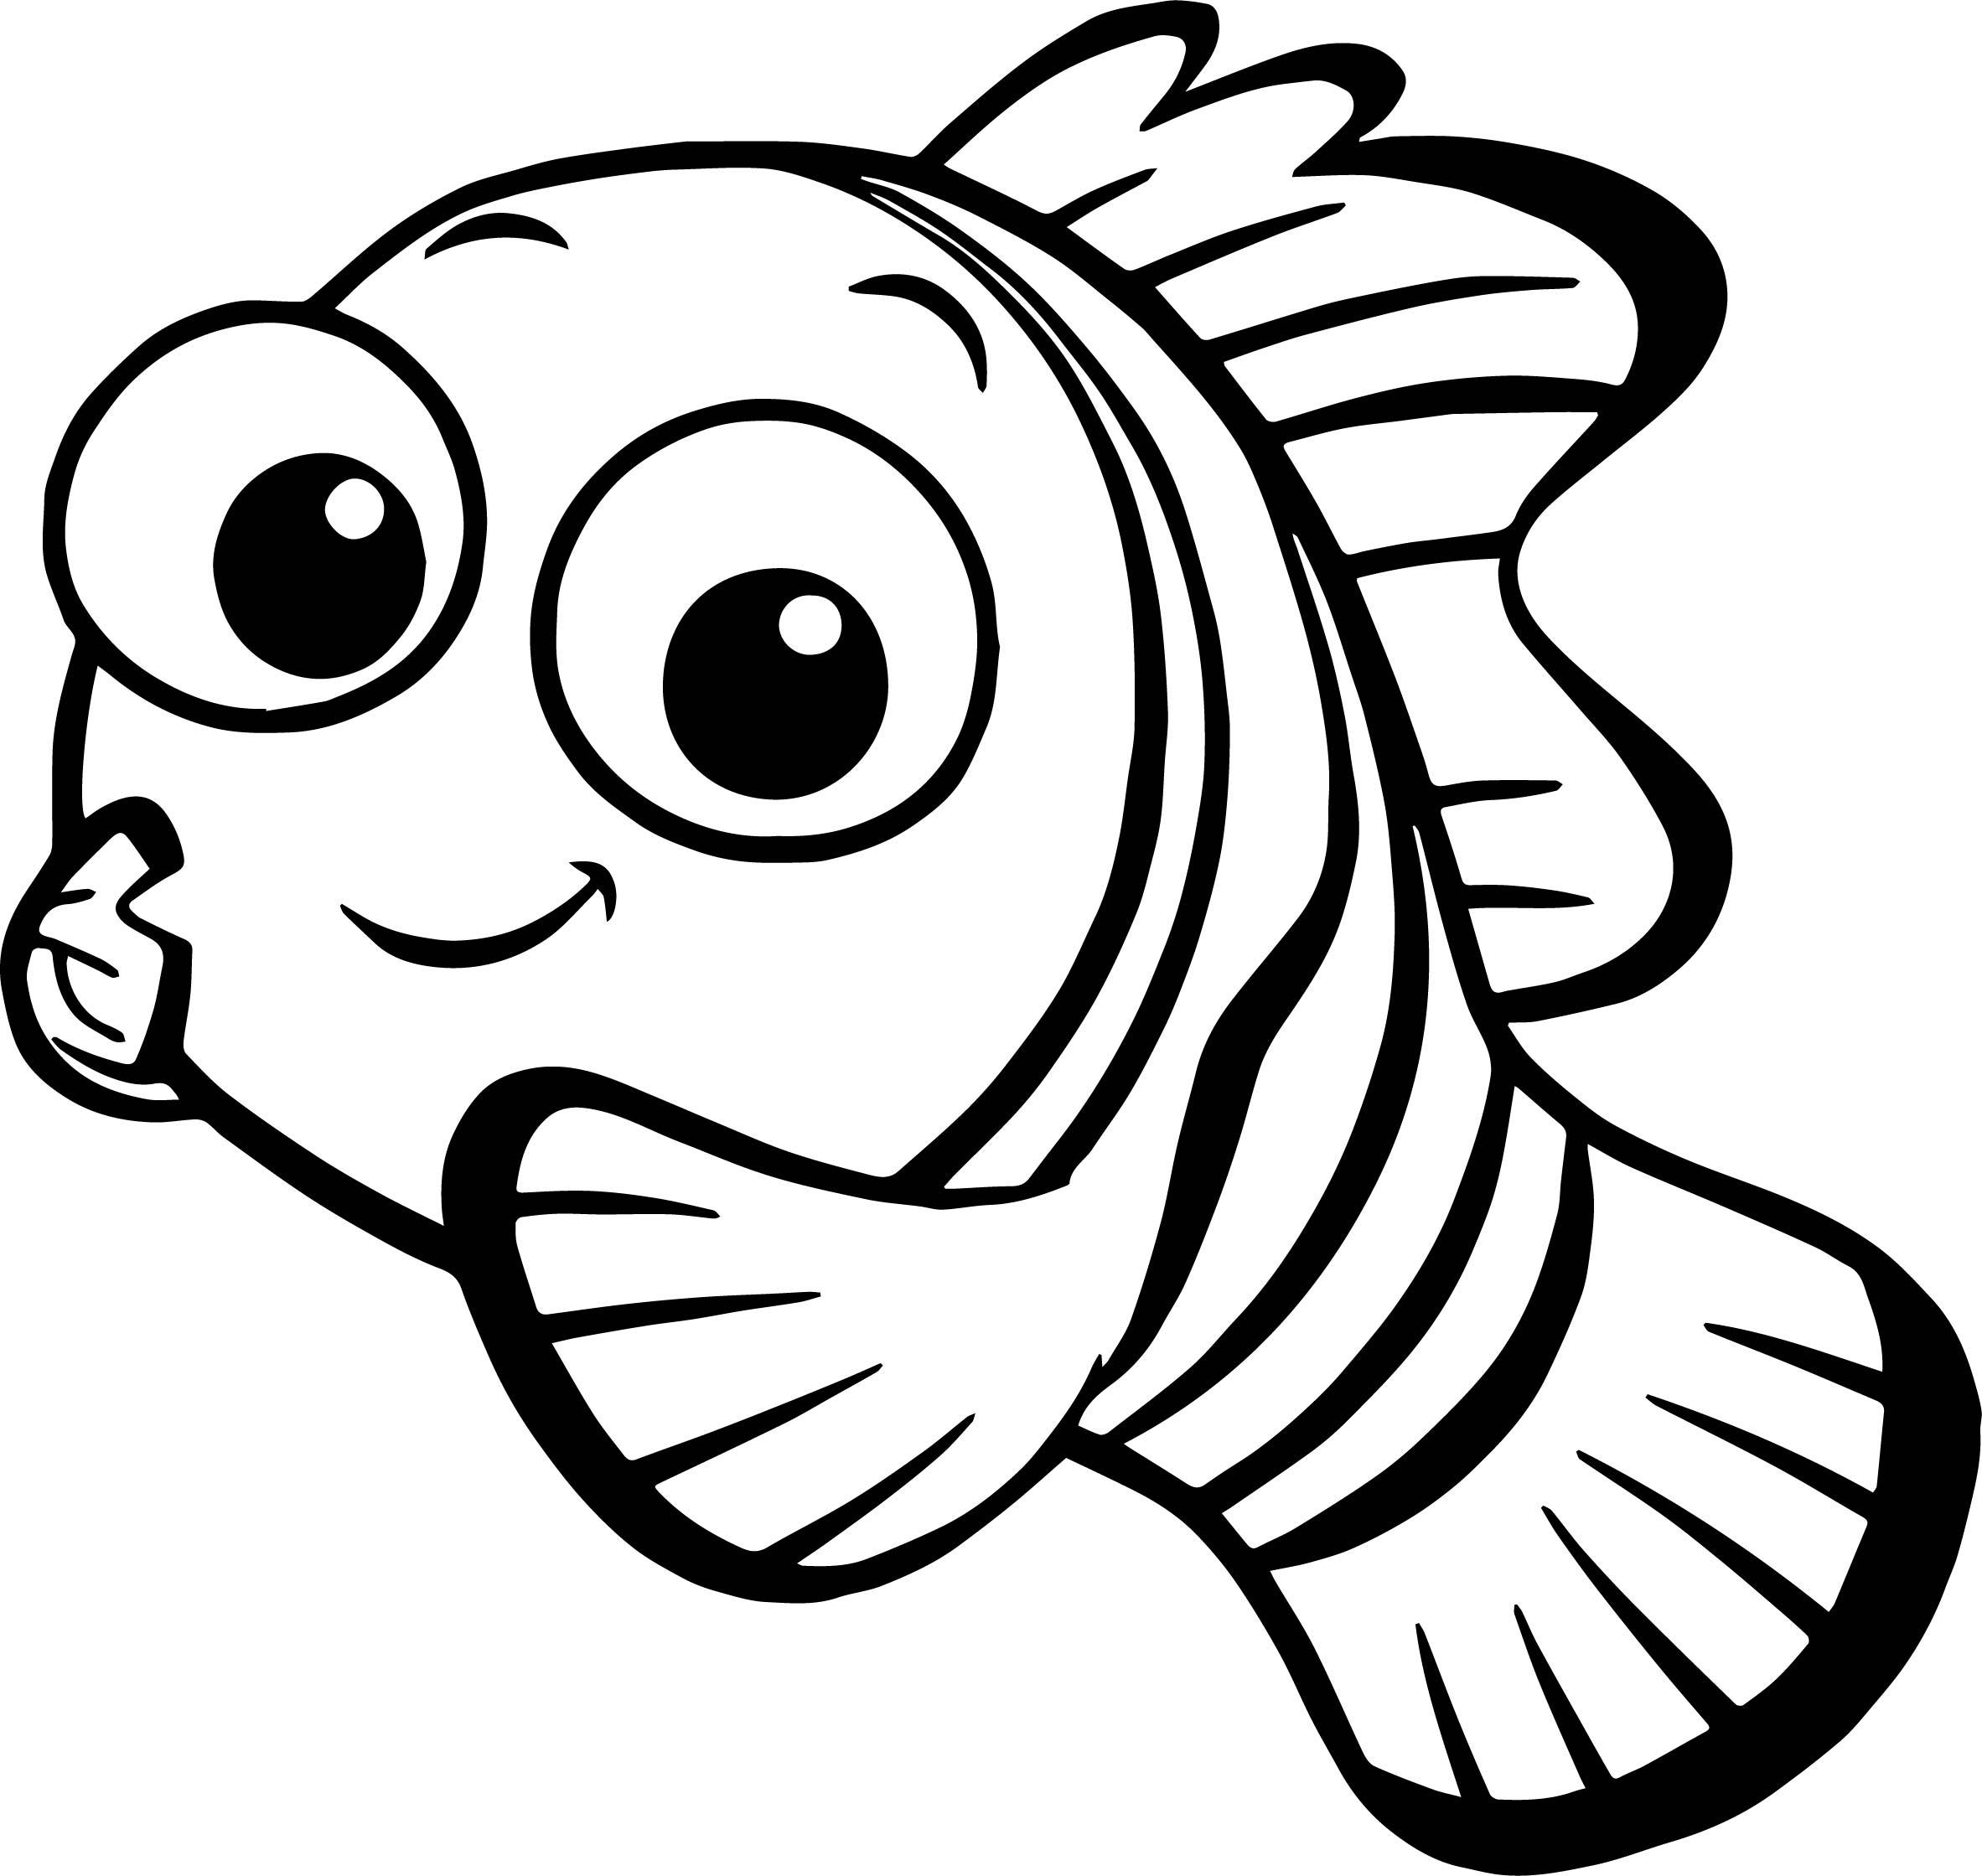 Disney Finding Nemo fish black and white clipart